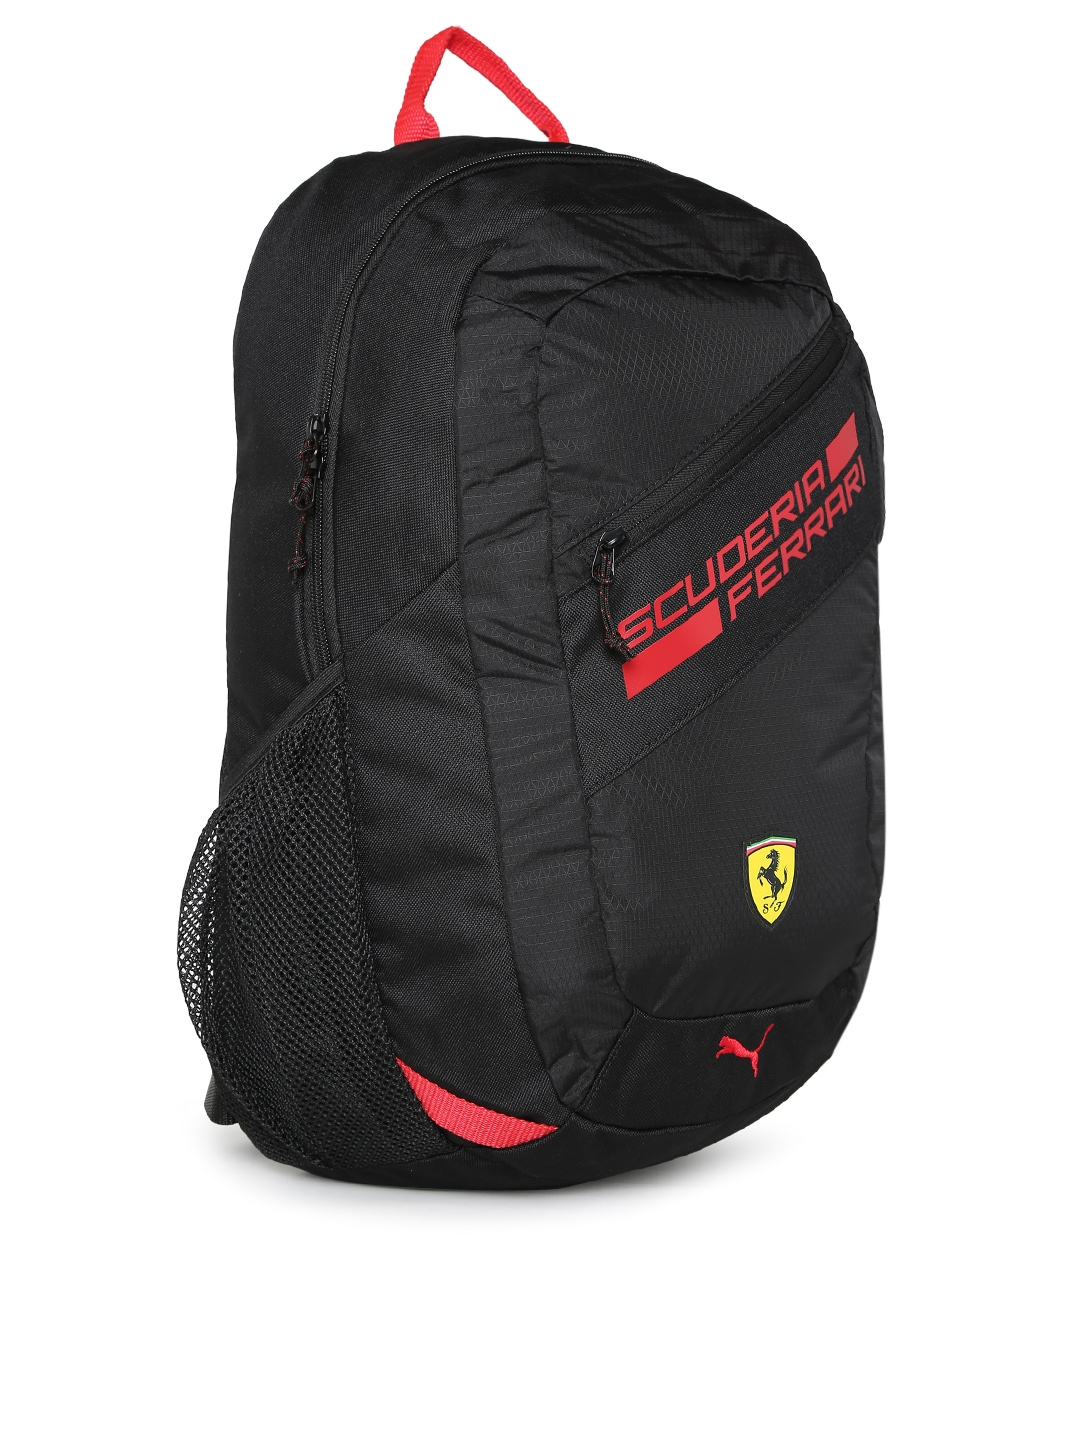 Buy Puma Unisex Black Ferrari Fanwear Backpack - Backpacks for ... 46630df3d7bd2